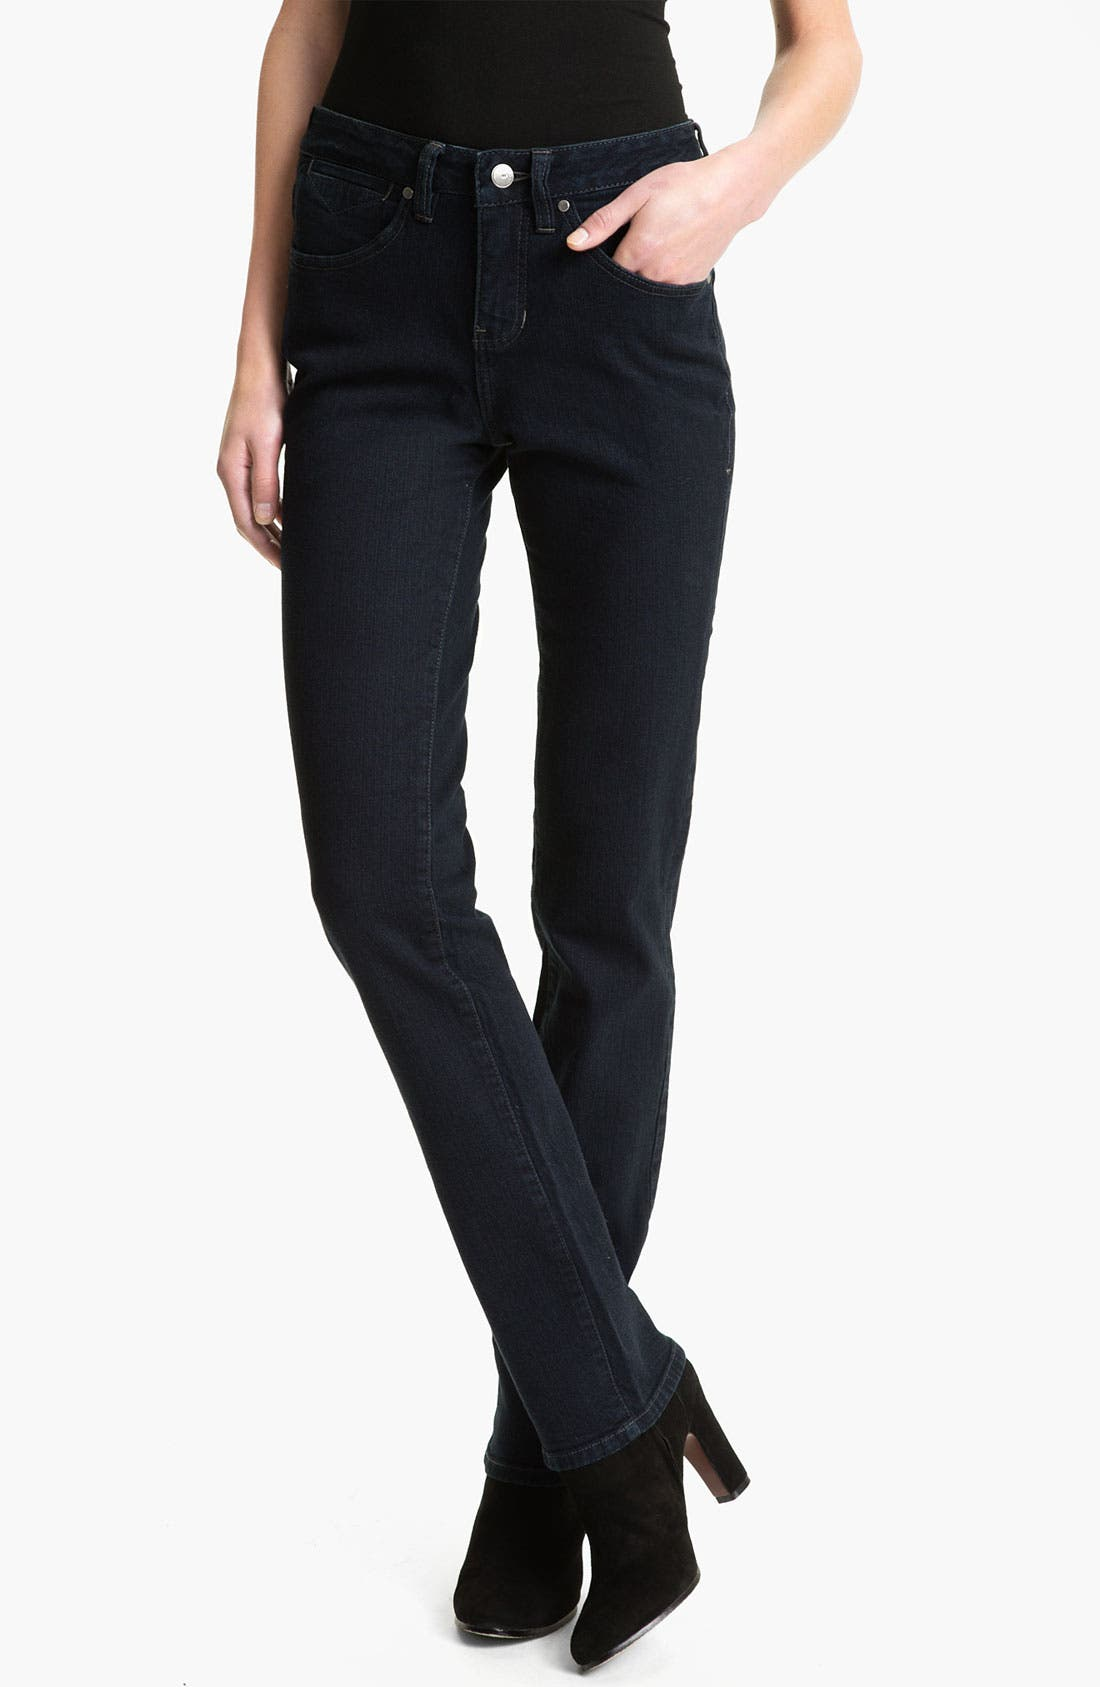 Alternate Image 1 Selected - Jag Jeans 'Donovan' Straight Leg Jeans (After Midnight) (Petite)